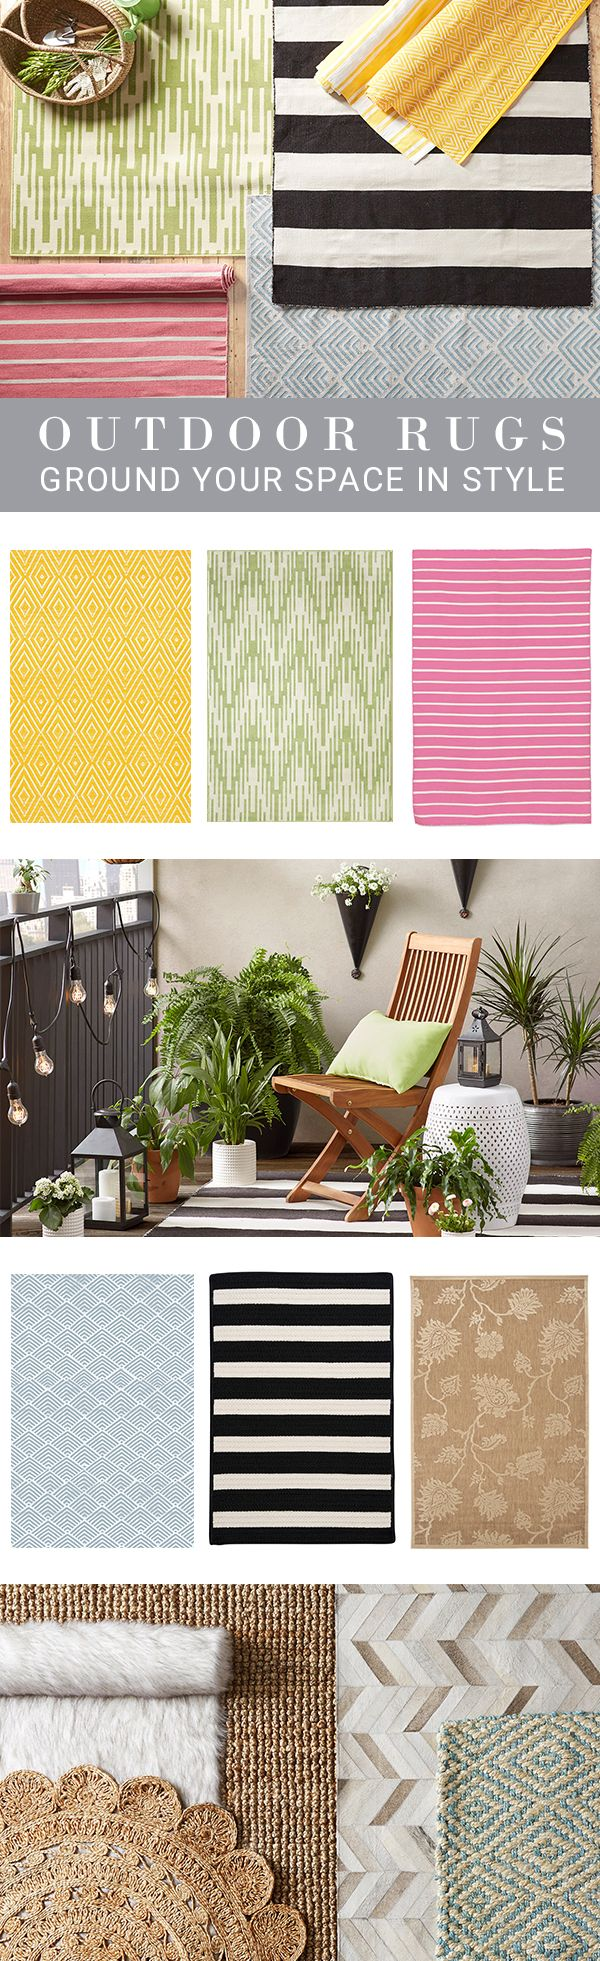 Style starts from the bottom up—enliven any space with chic rugs at irresistible prices from Joss & Main. Anchor living room furniture, add a pop of pattern to the patio, or lend flair to the foyer with rugs in eye-catching colors.